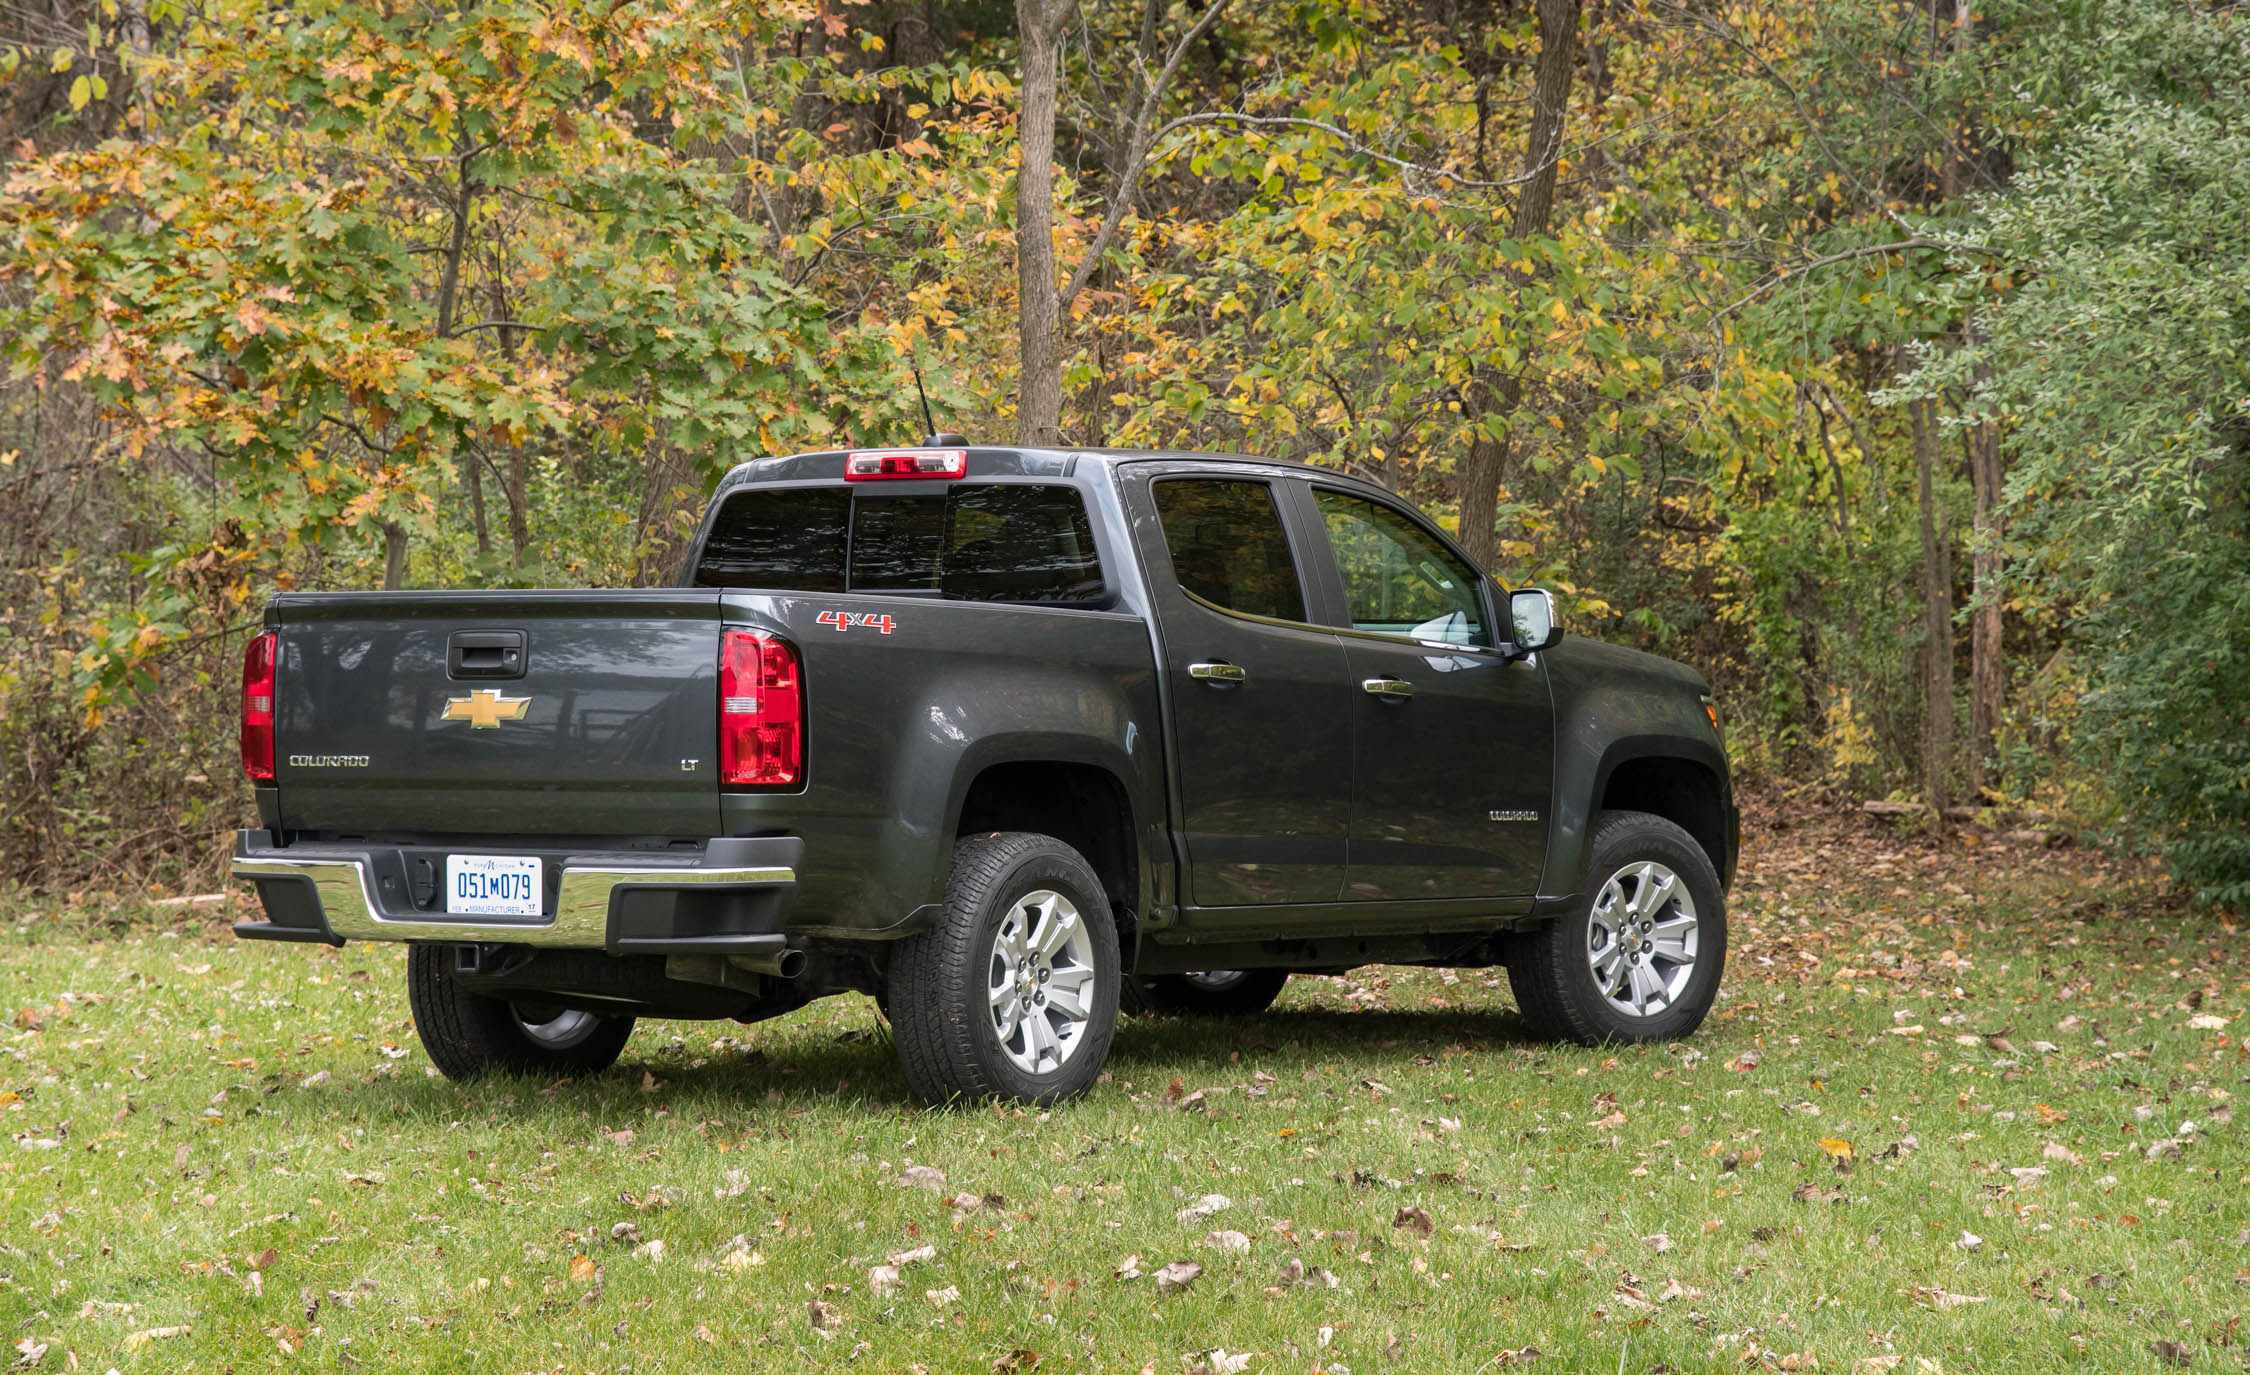 2017 Chevrolet Colorado LT Exterior Side And Rear (Photo 23 of 41)